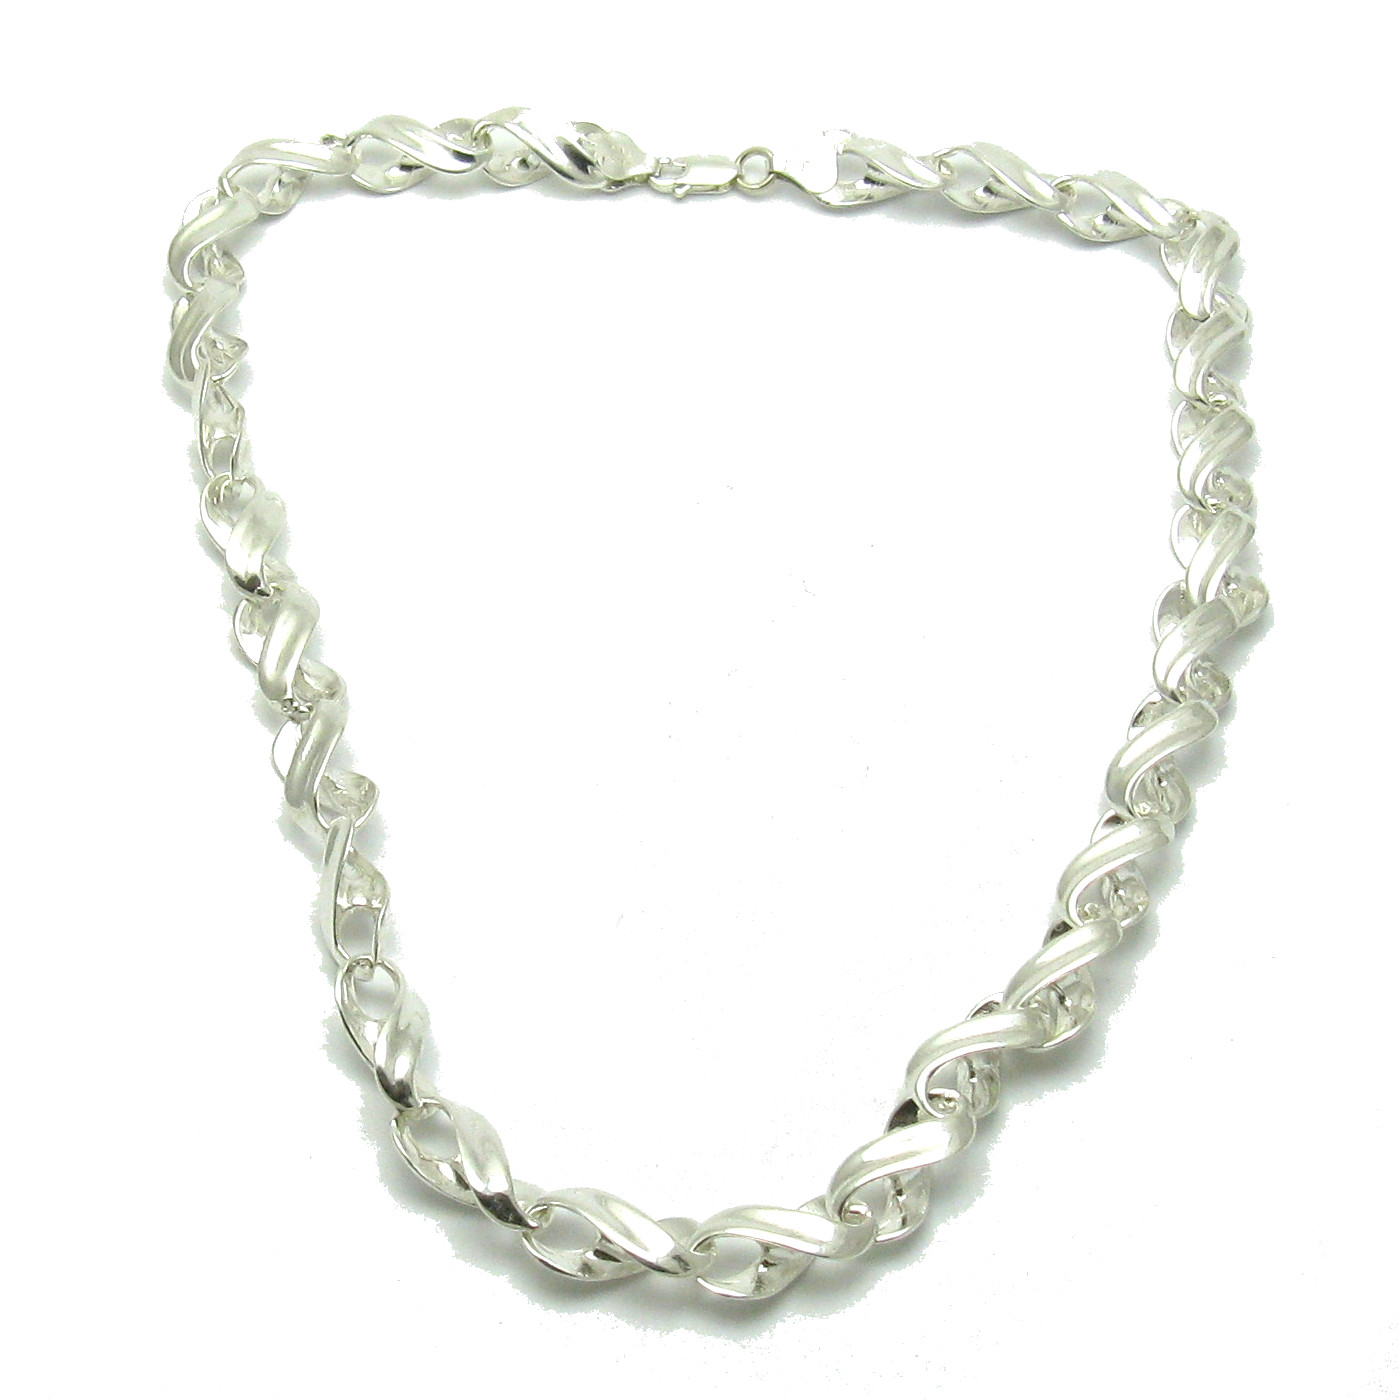 Silver necklace - N000277 - 50cm